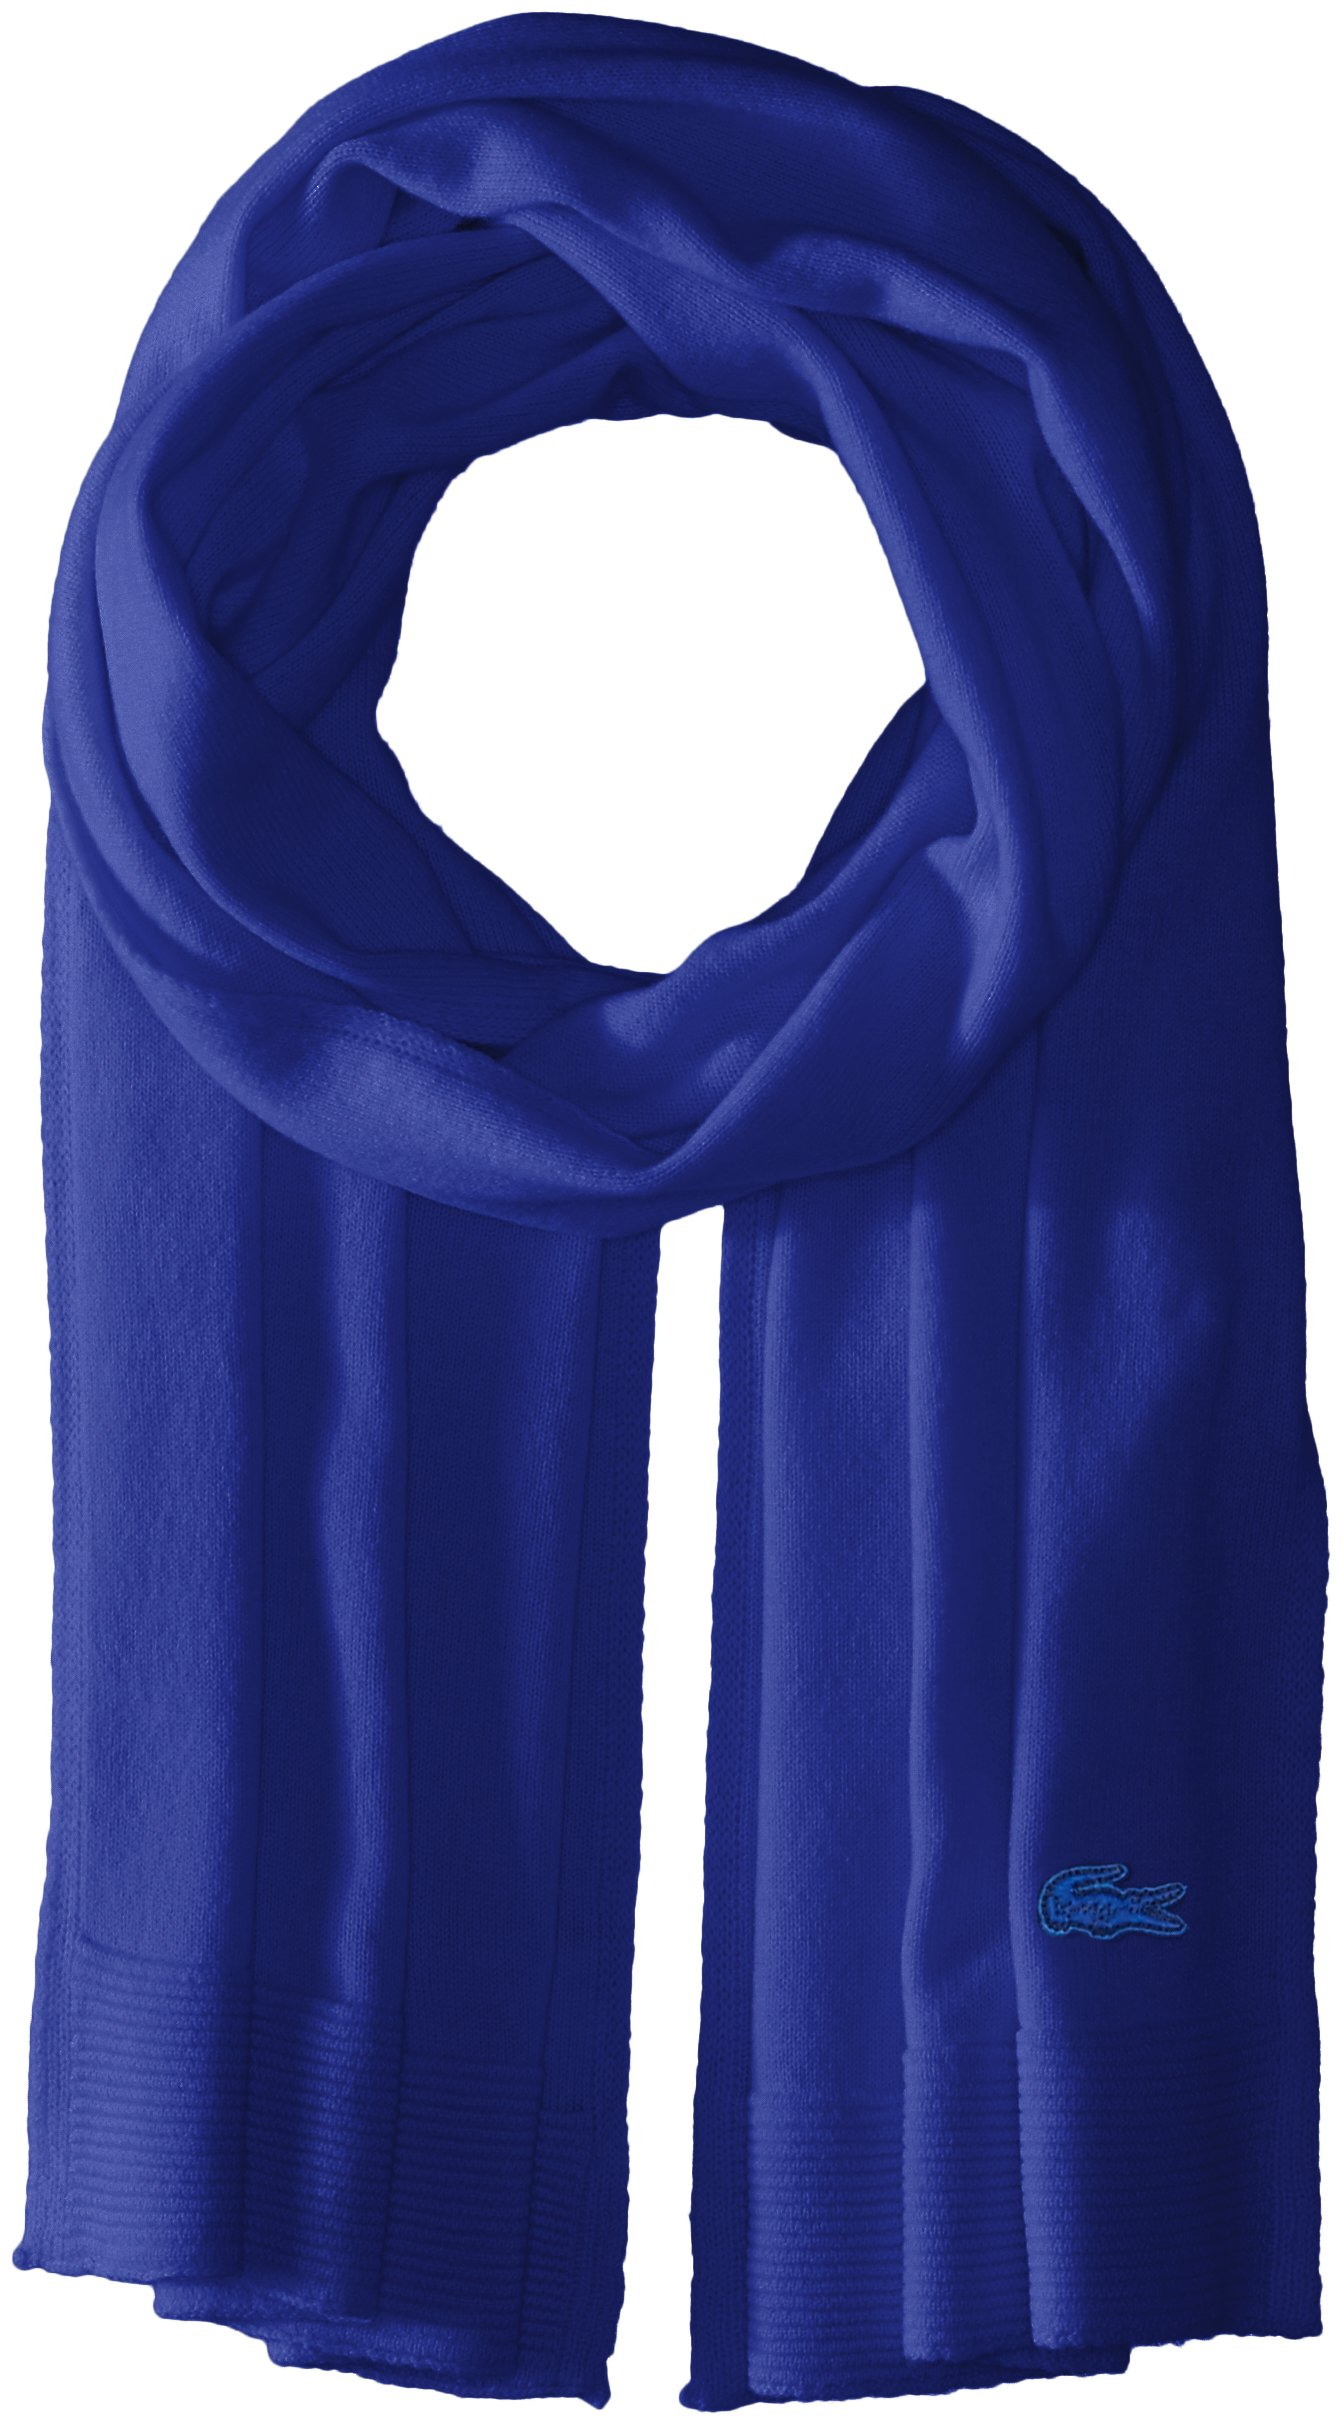 Lacoste Women's solid Fine Jersey Cashmere Scarf, Steamship Blue, One Size